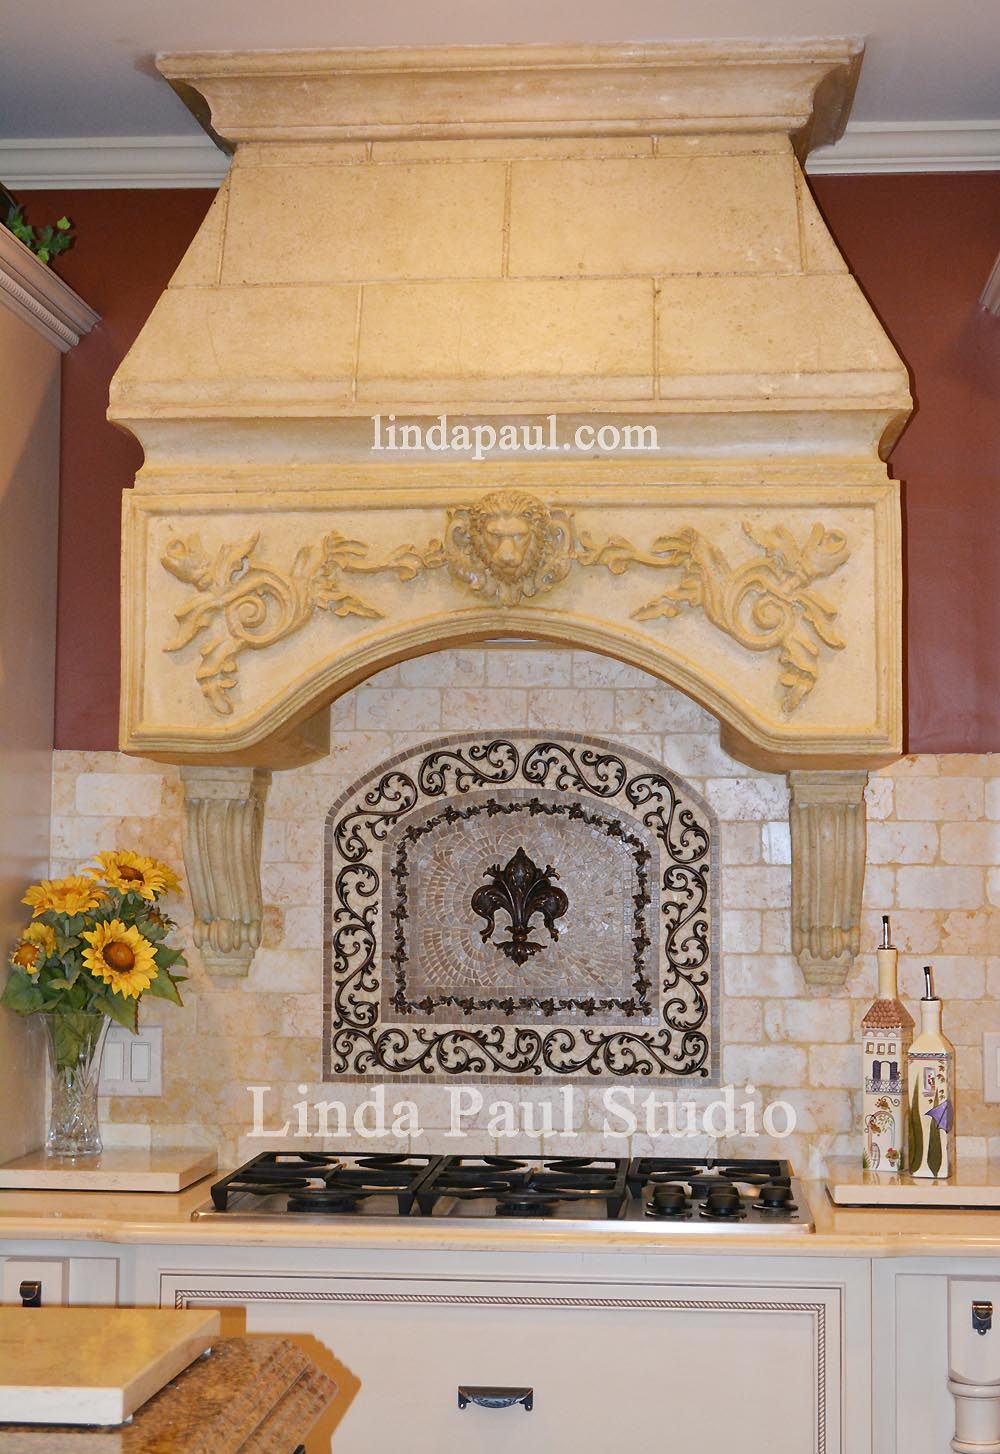 Customer Reviews Of Tile Murals And Mosaic Kitchen